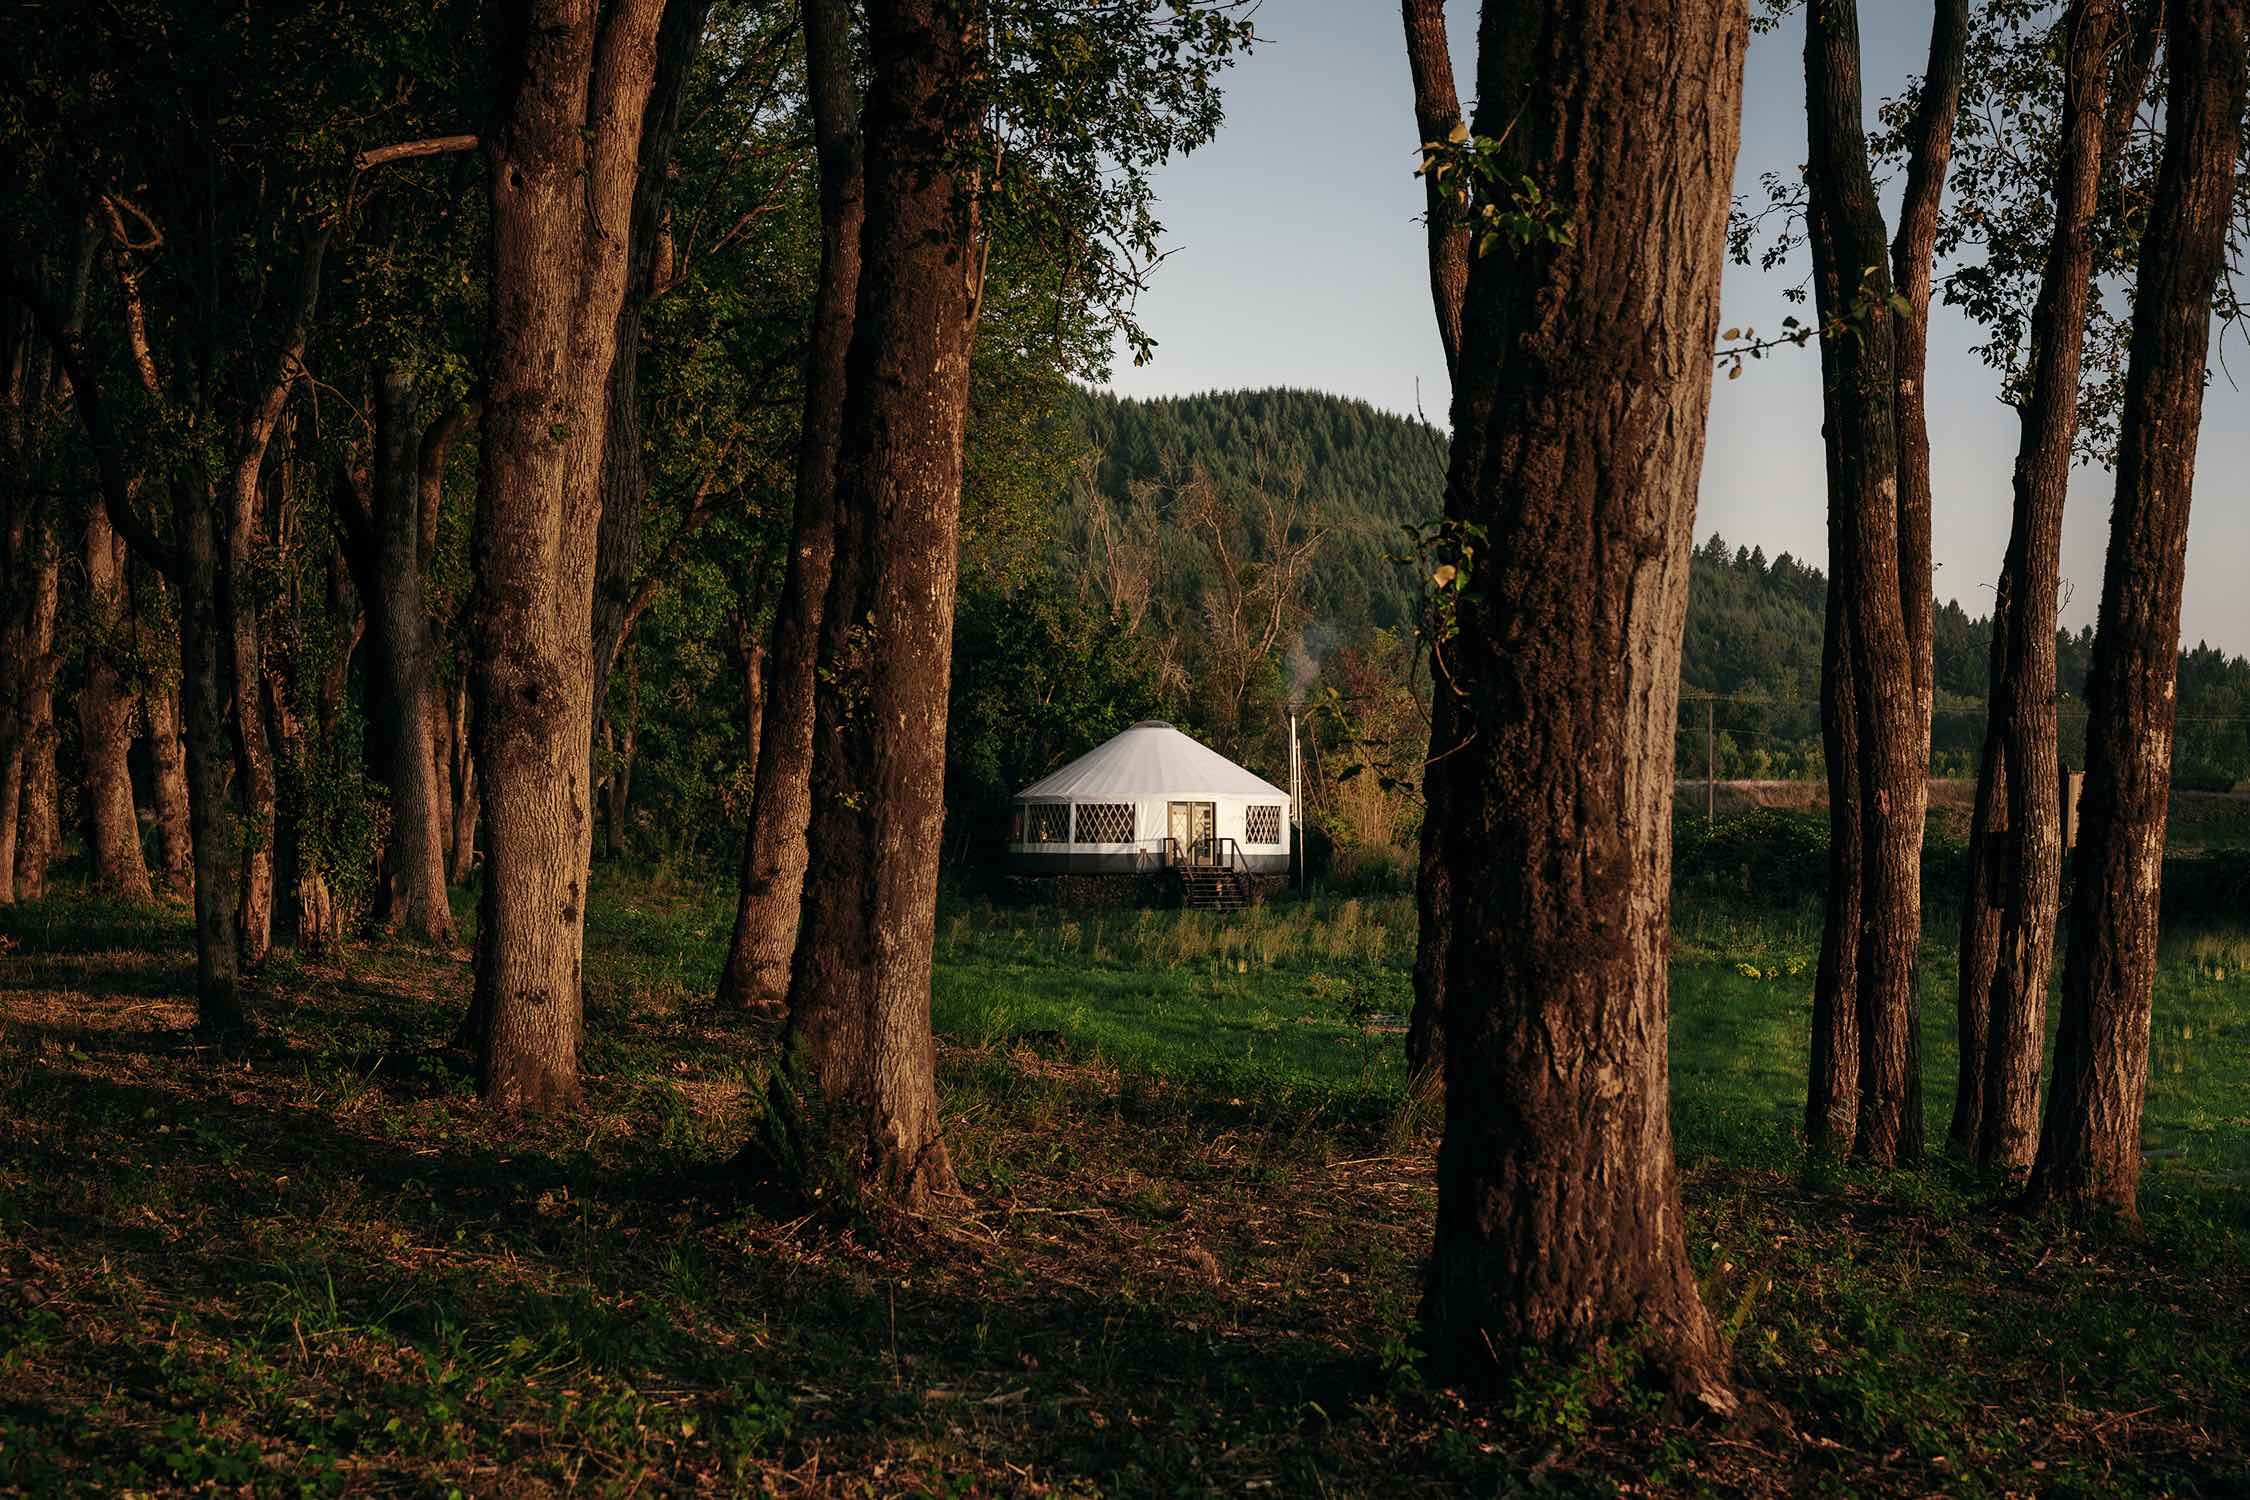 the yurt view through the trees